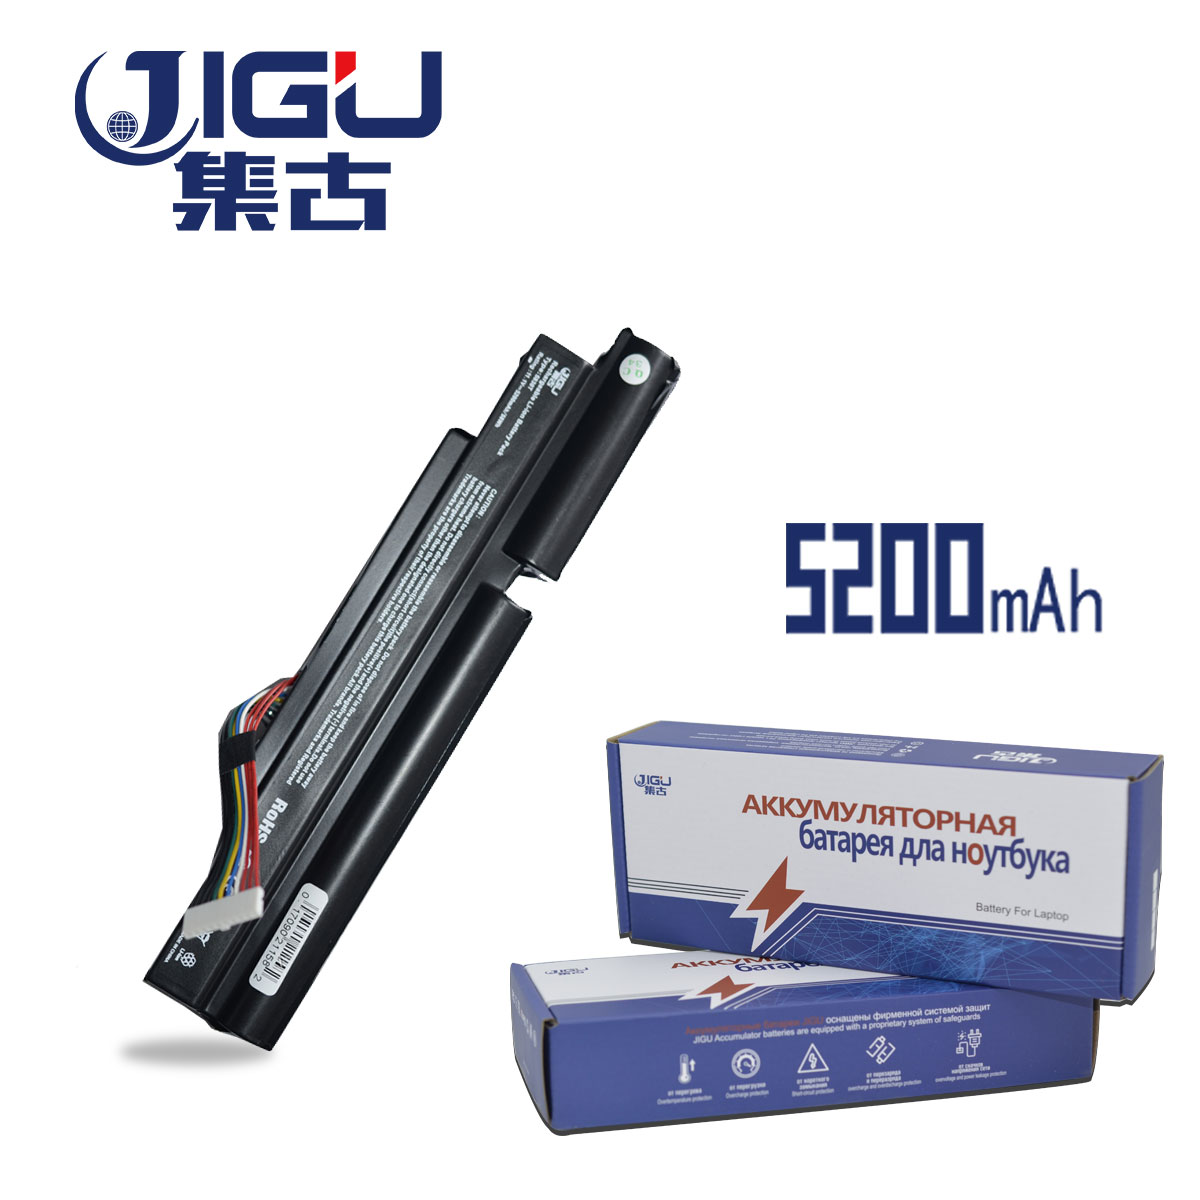 JIGU 5200MAH Laptop Battery 3INR18/65-2 AS11A3E AS11A5E For Acer Aspire TimelineX 3830TG 3830T 4830T 5830T 5830TG 4830TG